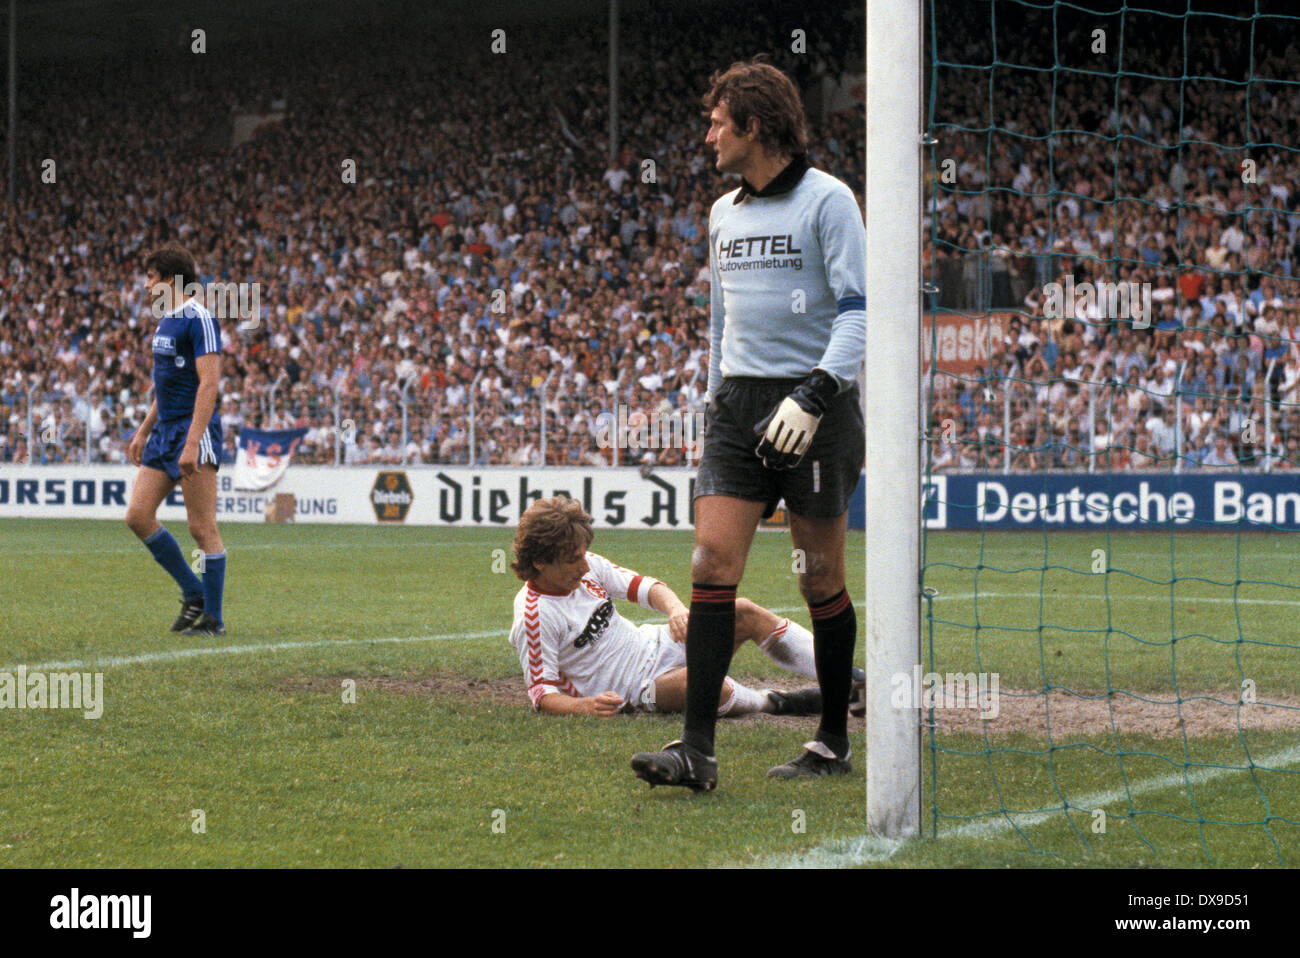 football, 2. Bundesliga Nord, 2. Bundesliga Sued, 1979/1980, relegation match to Bundesliga 1980/1981, return leg, Georg Melches Stadium, Rot Weiss Essen versus Karlsruher SC 3:1, scene of the match, f.l.t.r. Hermann Kohlenbrenner (KSC), Matthias Herget ( - Stock Image